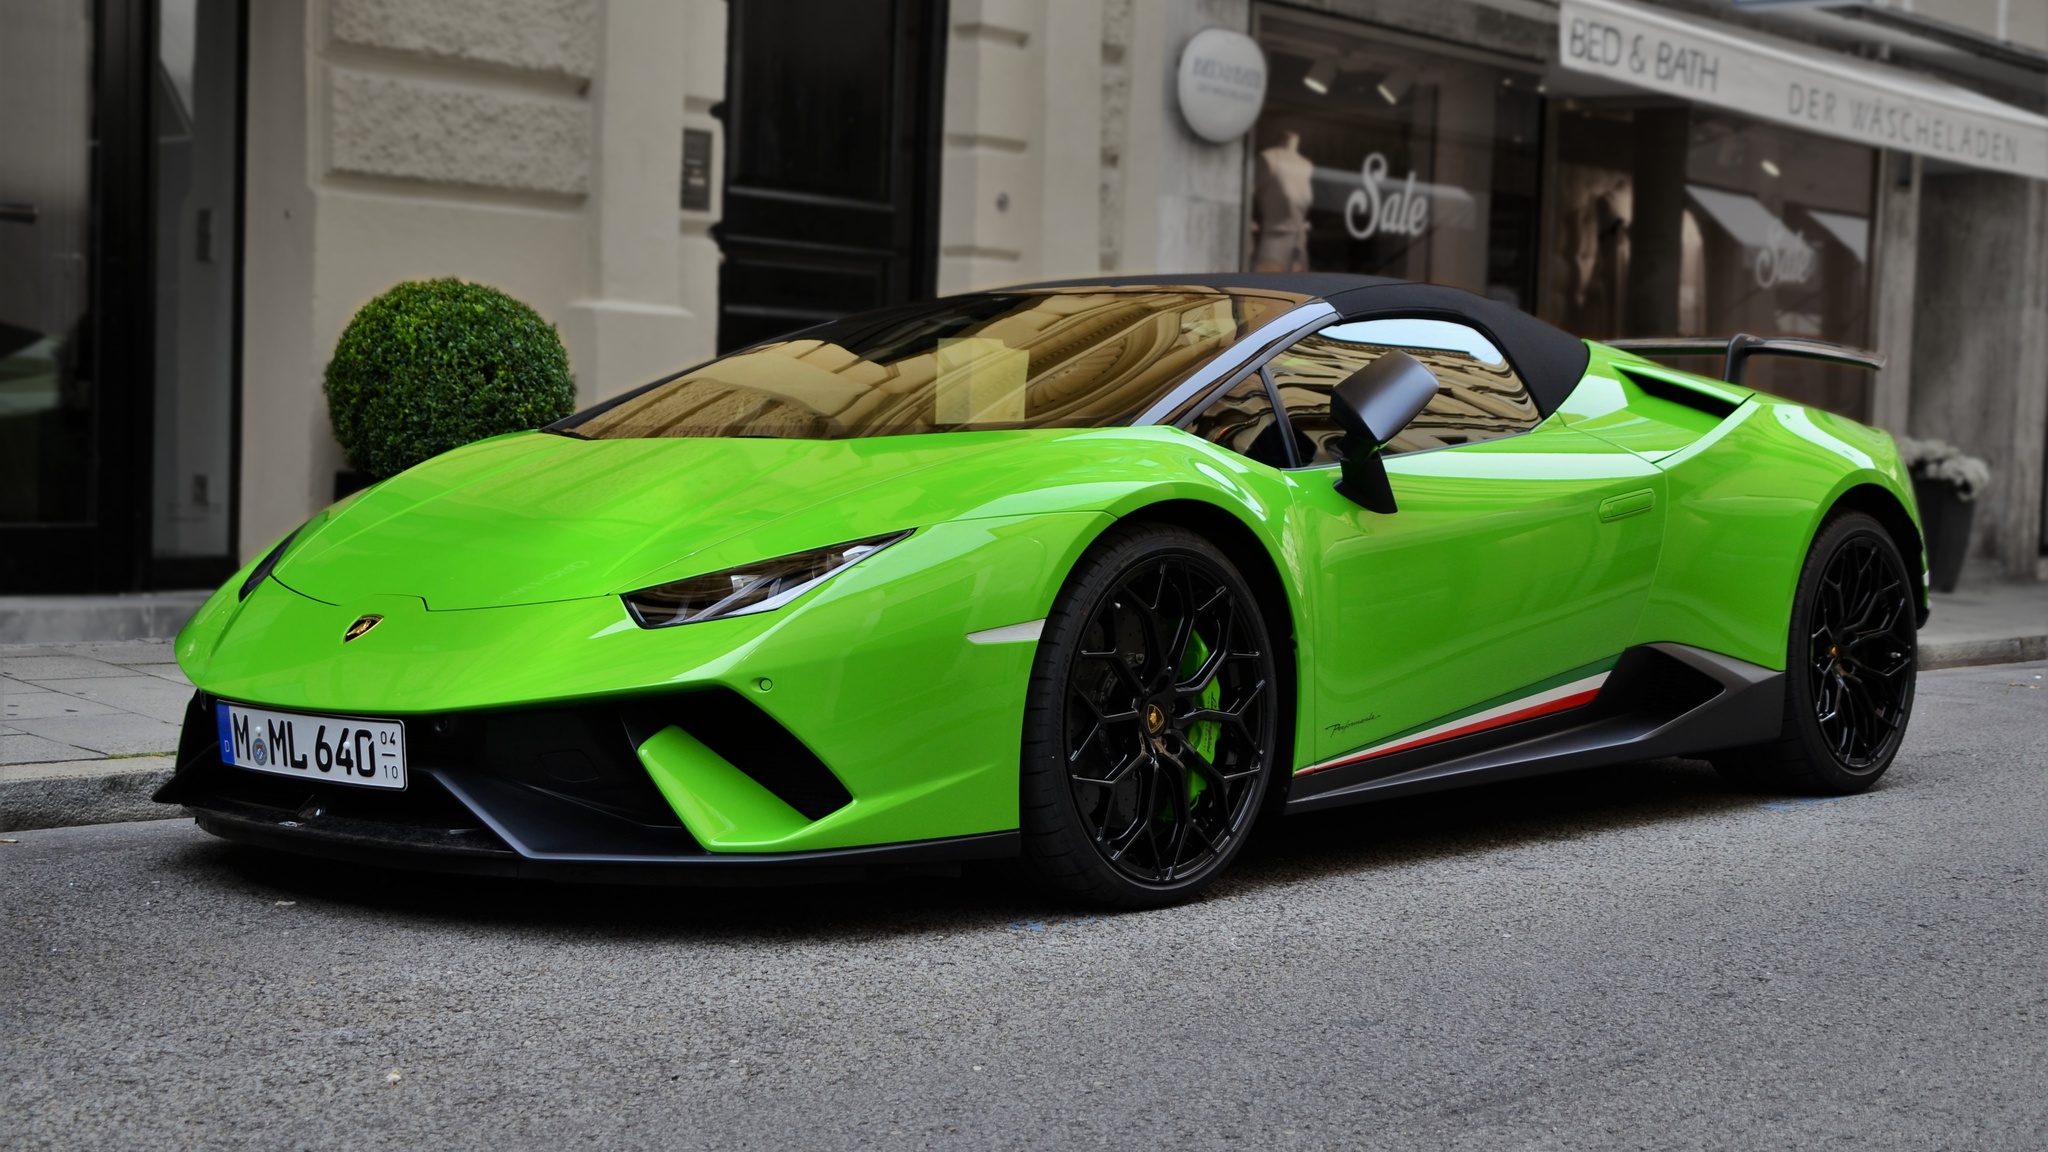 Lamborghini Huracan Performante Spyder - M-ML-640